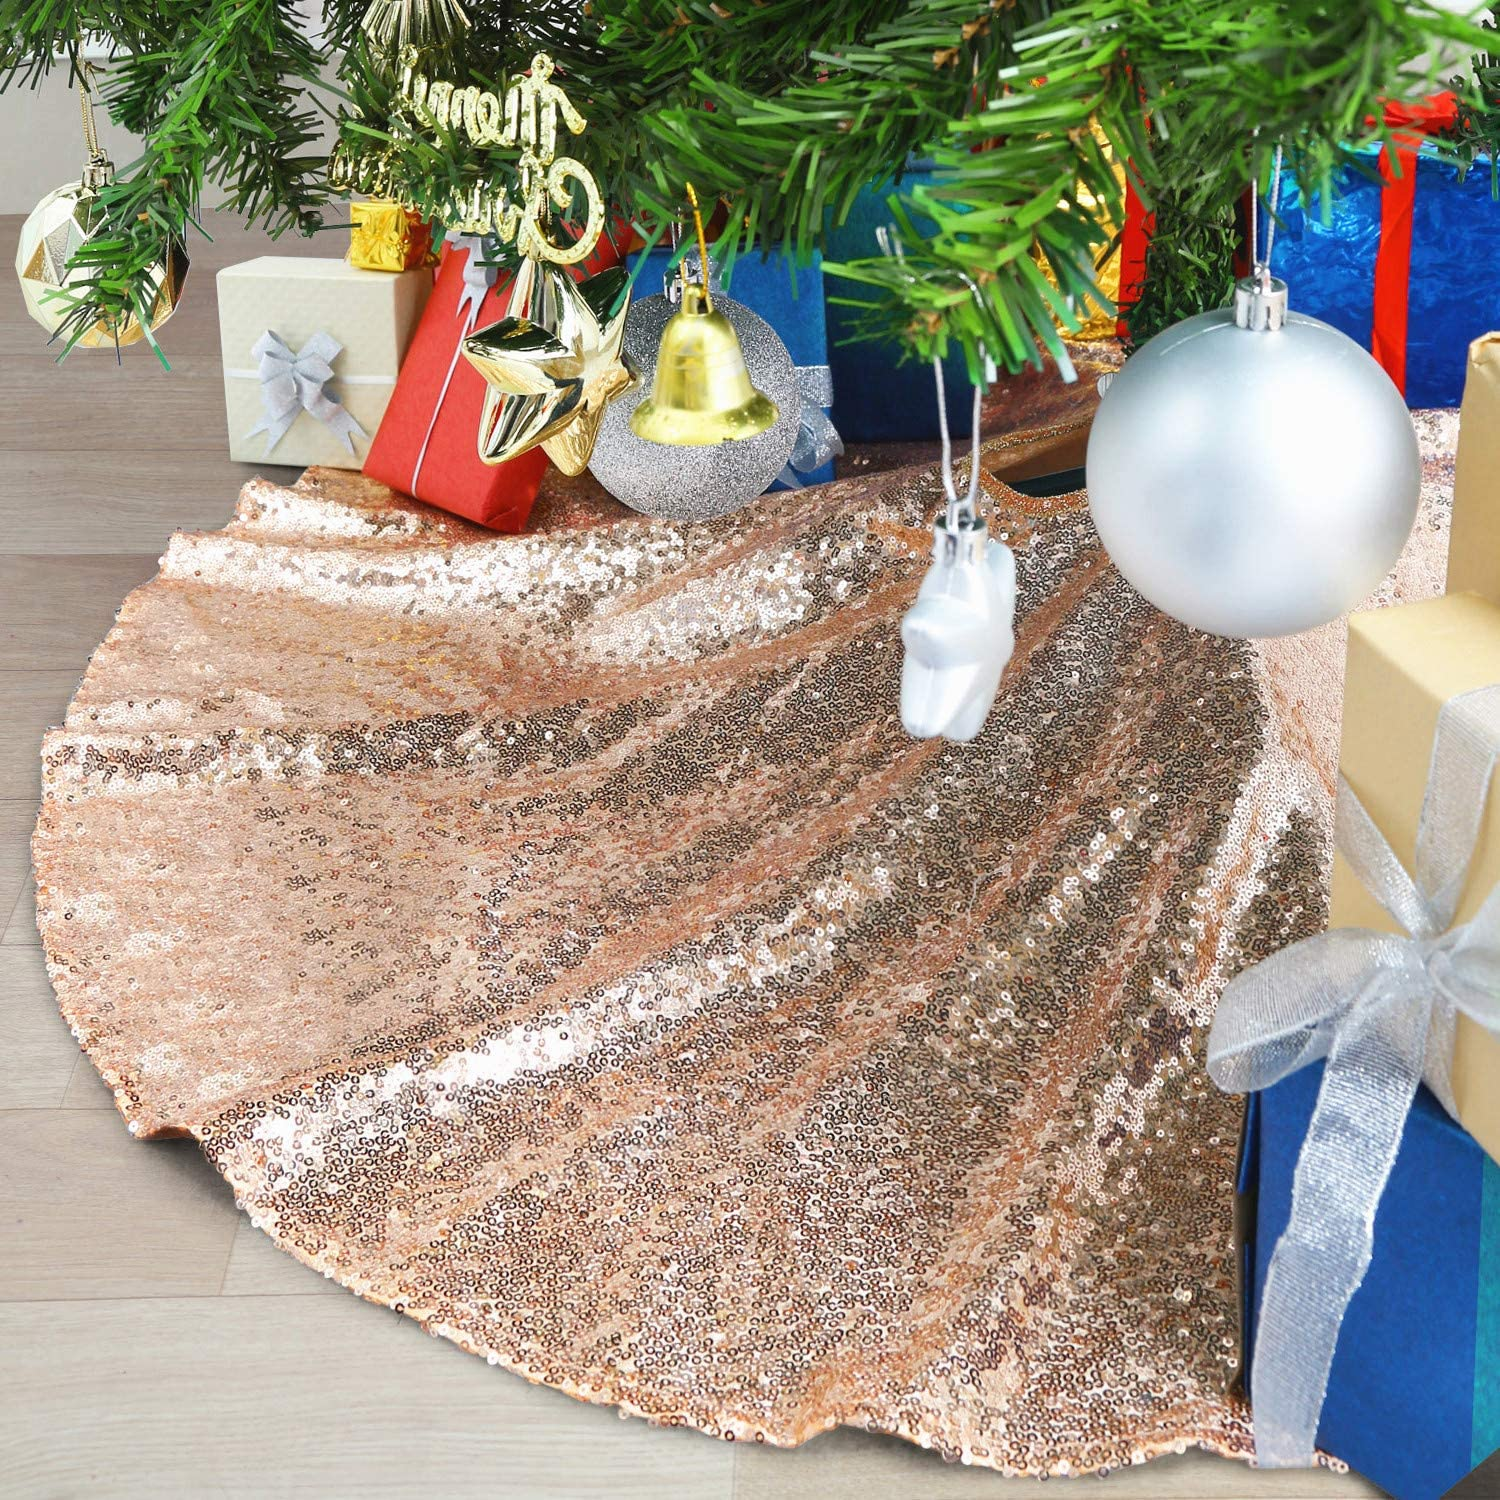 Amazon Com B Cool Sparkly Sequin Tree Skirt Rose Gold Christmas Sequin Tree Skirt Handmade Home Christmas Tree Decoration 48 Inch Round Home Kitchen